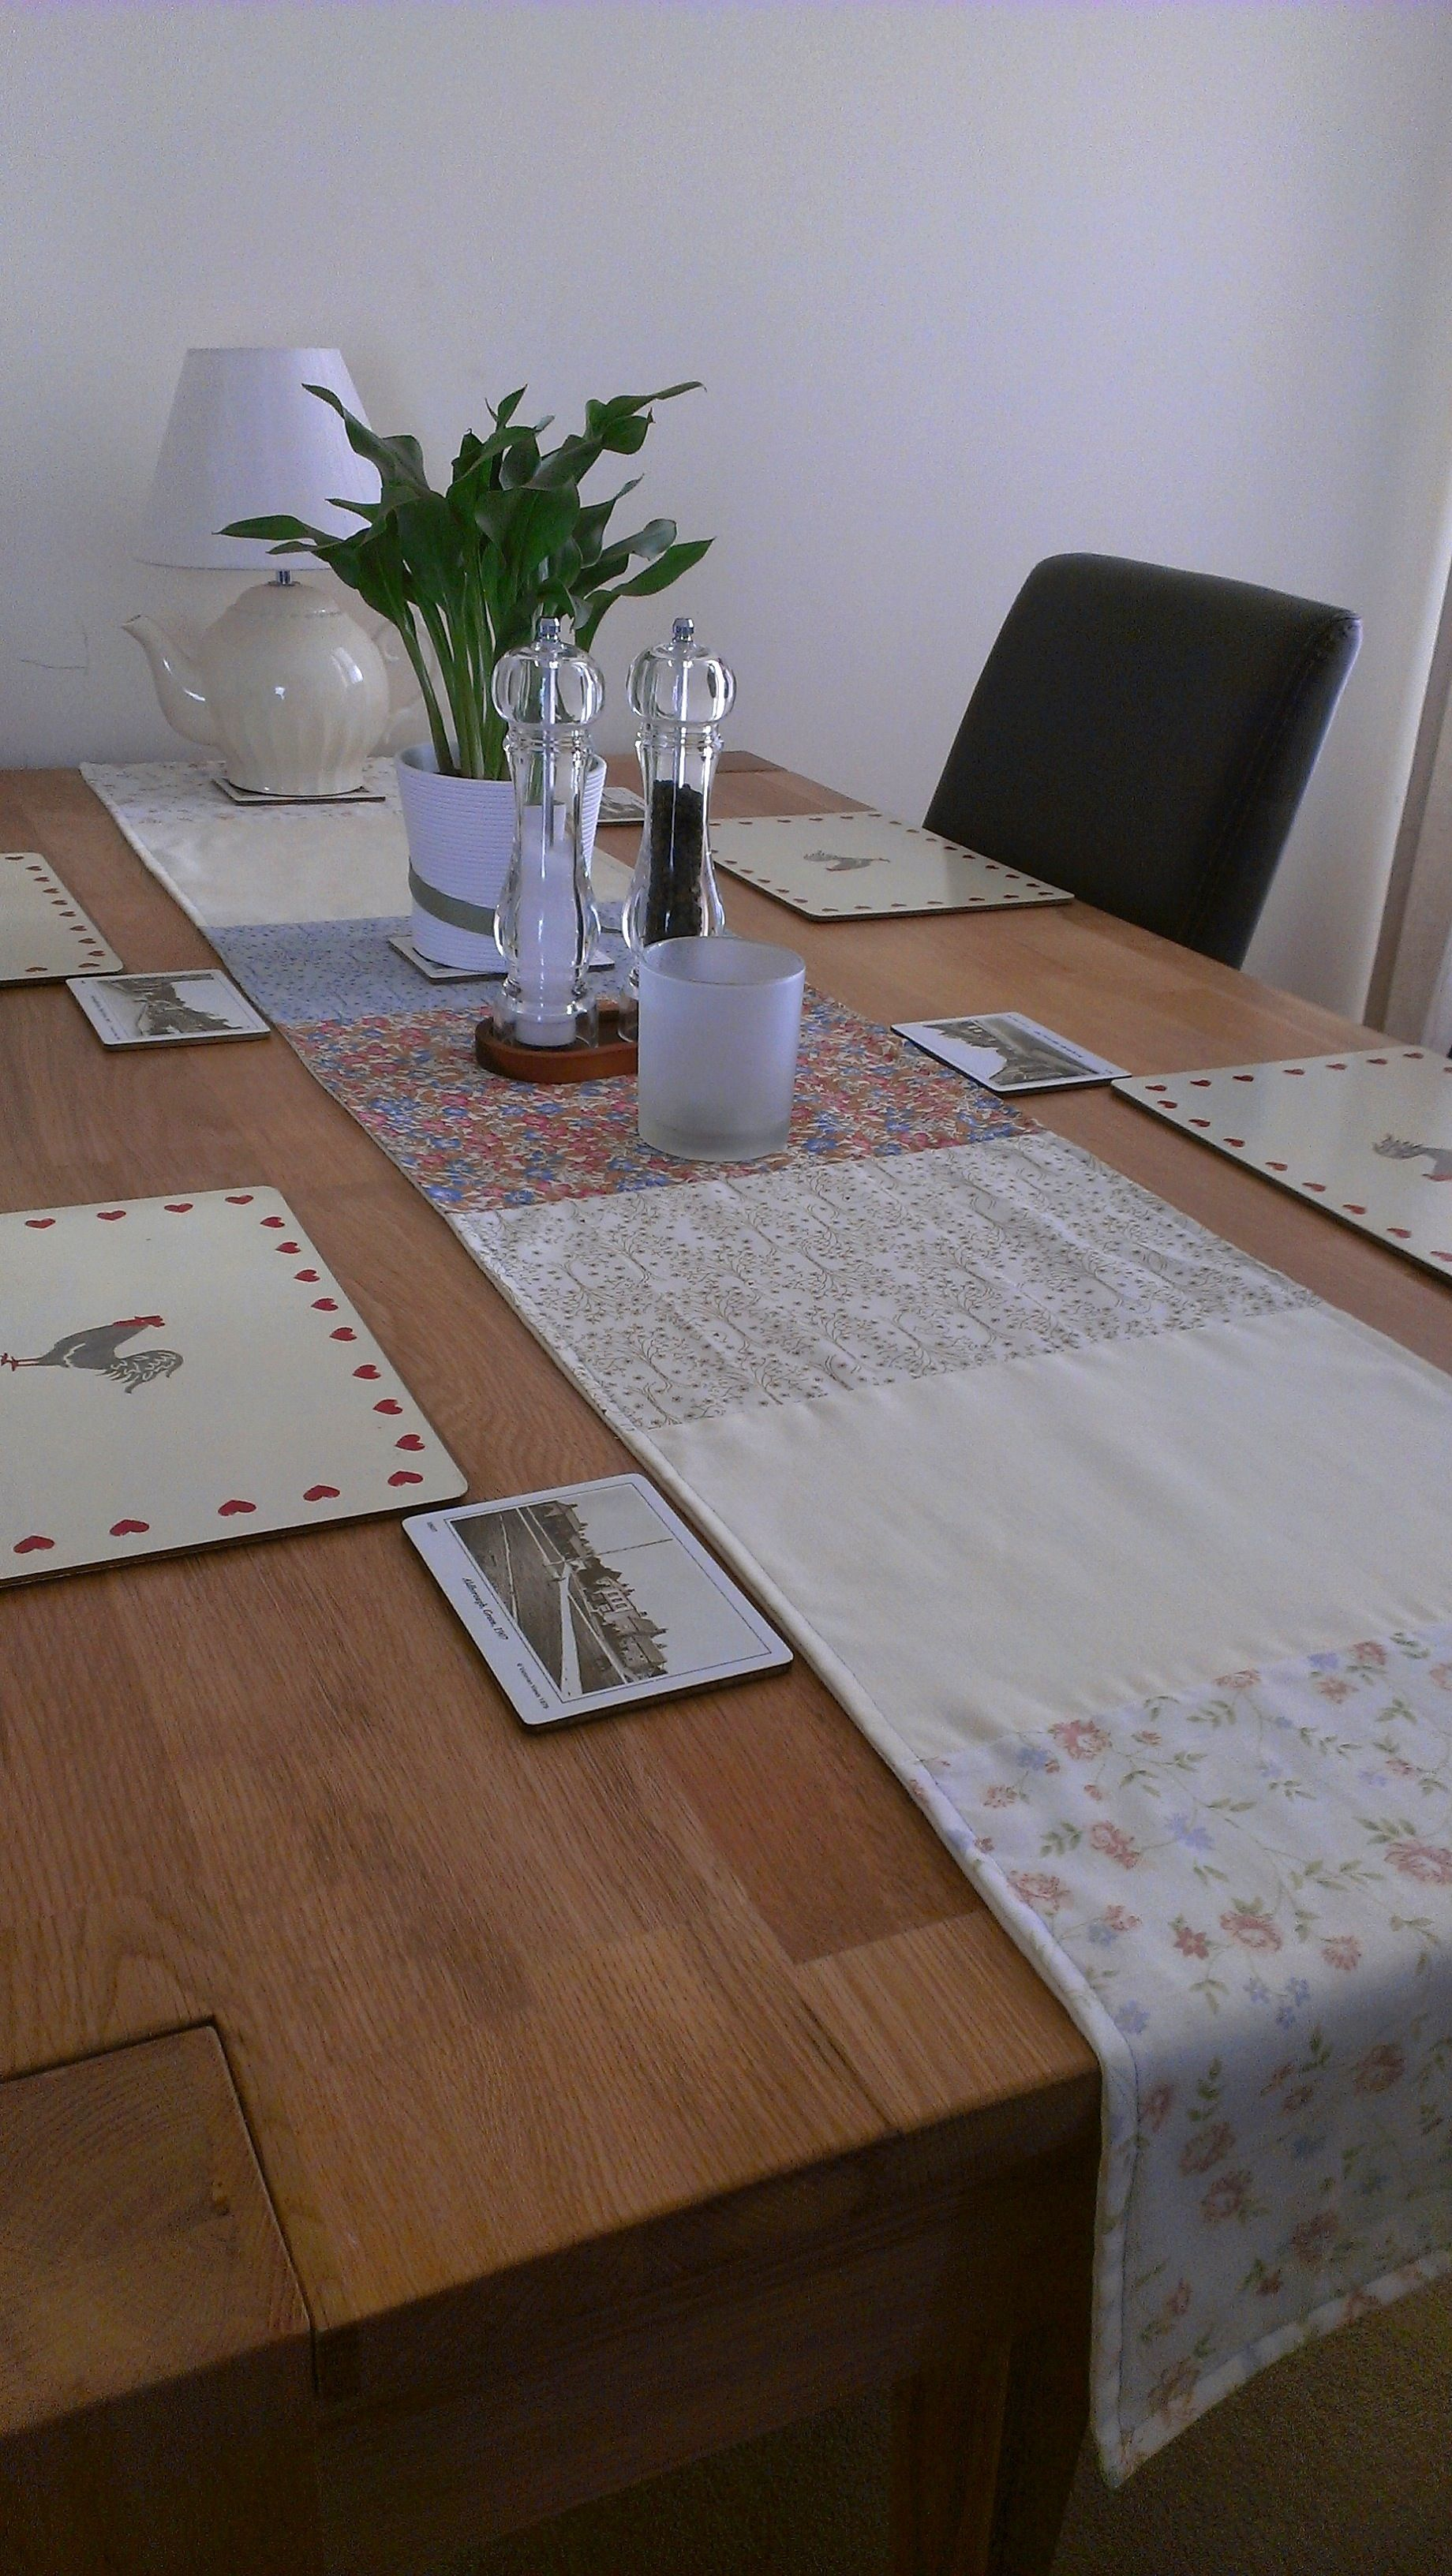 Patchwork table runner. I actually quite like it with the ends of the runner hanging off the table